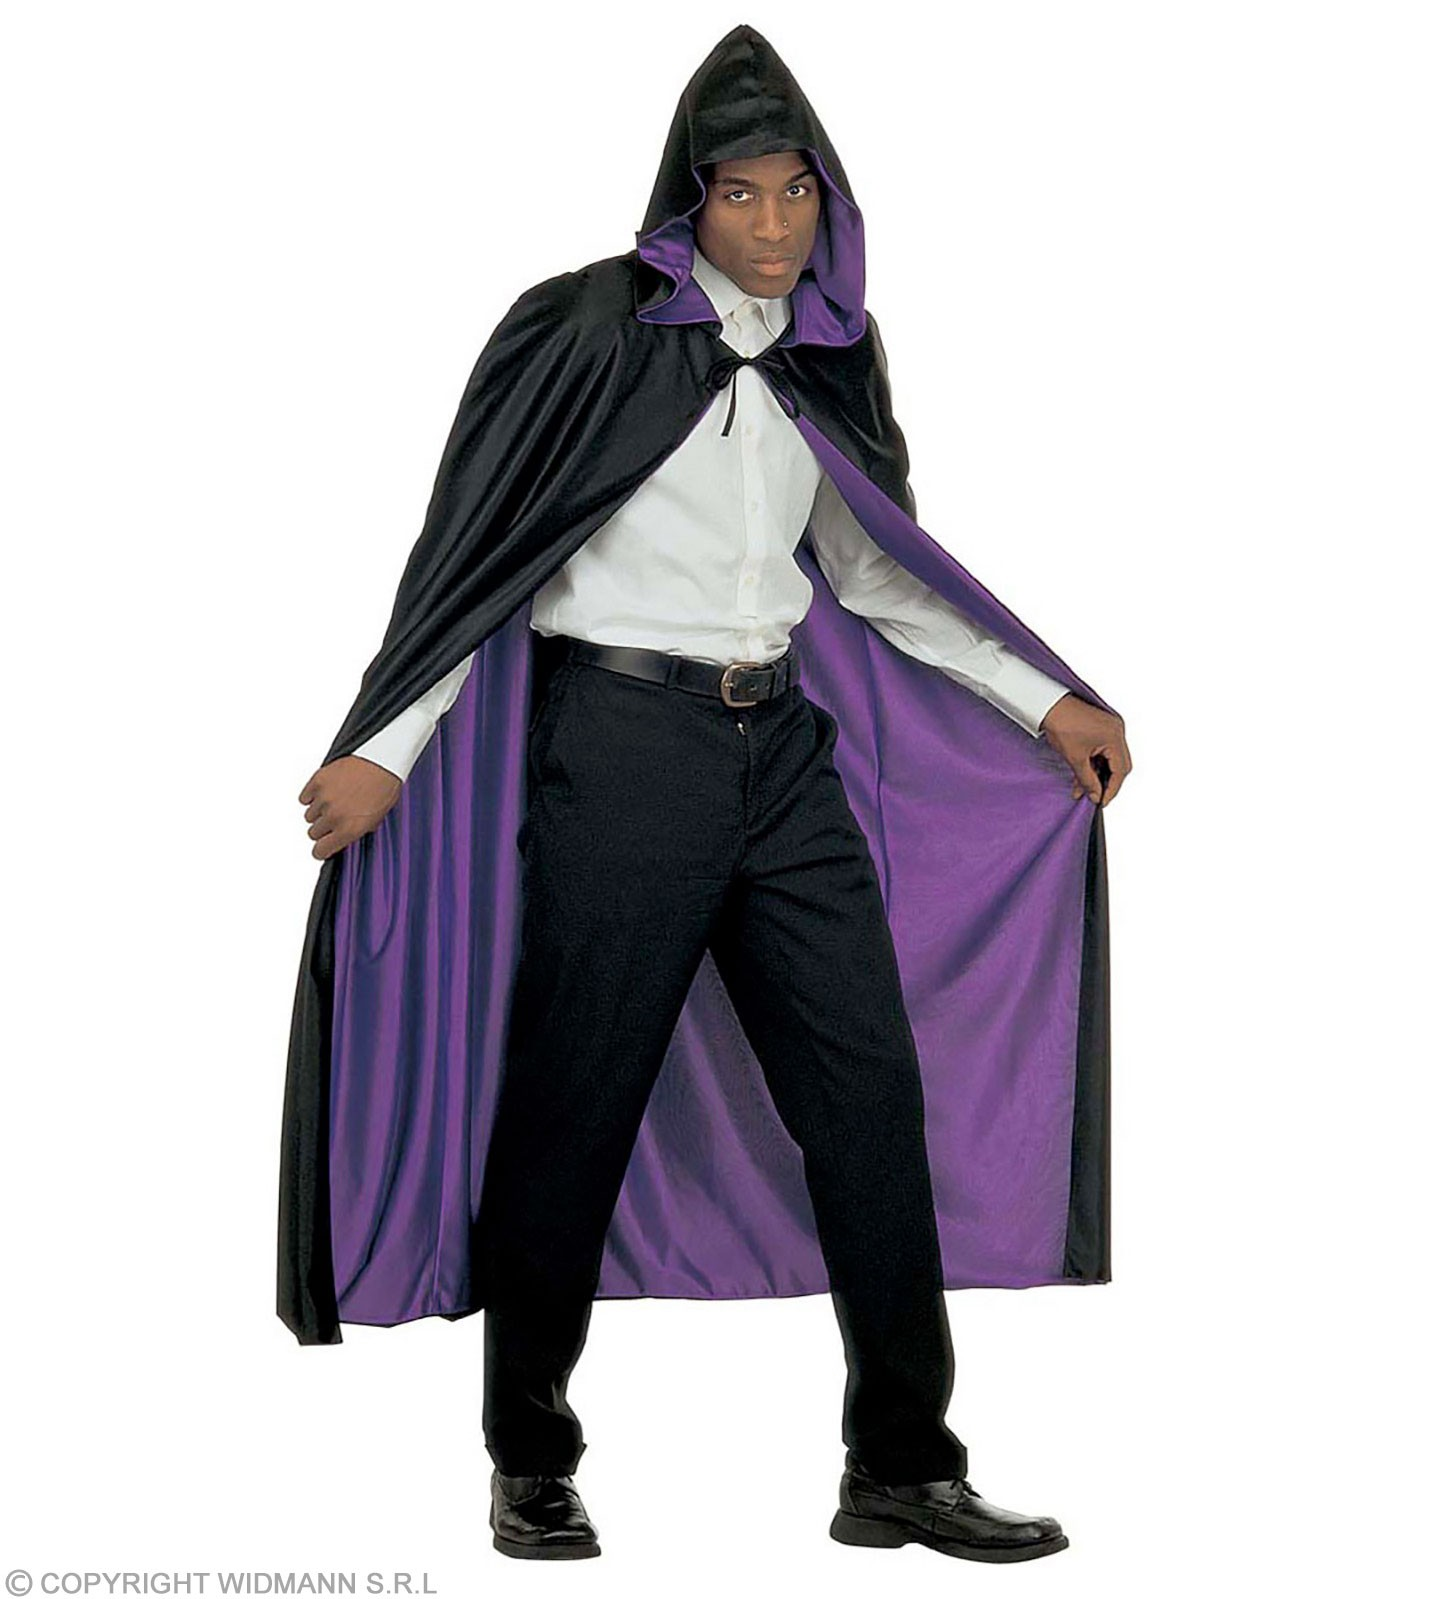 Hooded Cape Blk/Pple Reversible 140Cm Costume (Halloween)